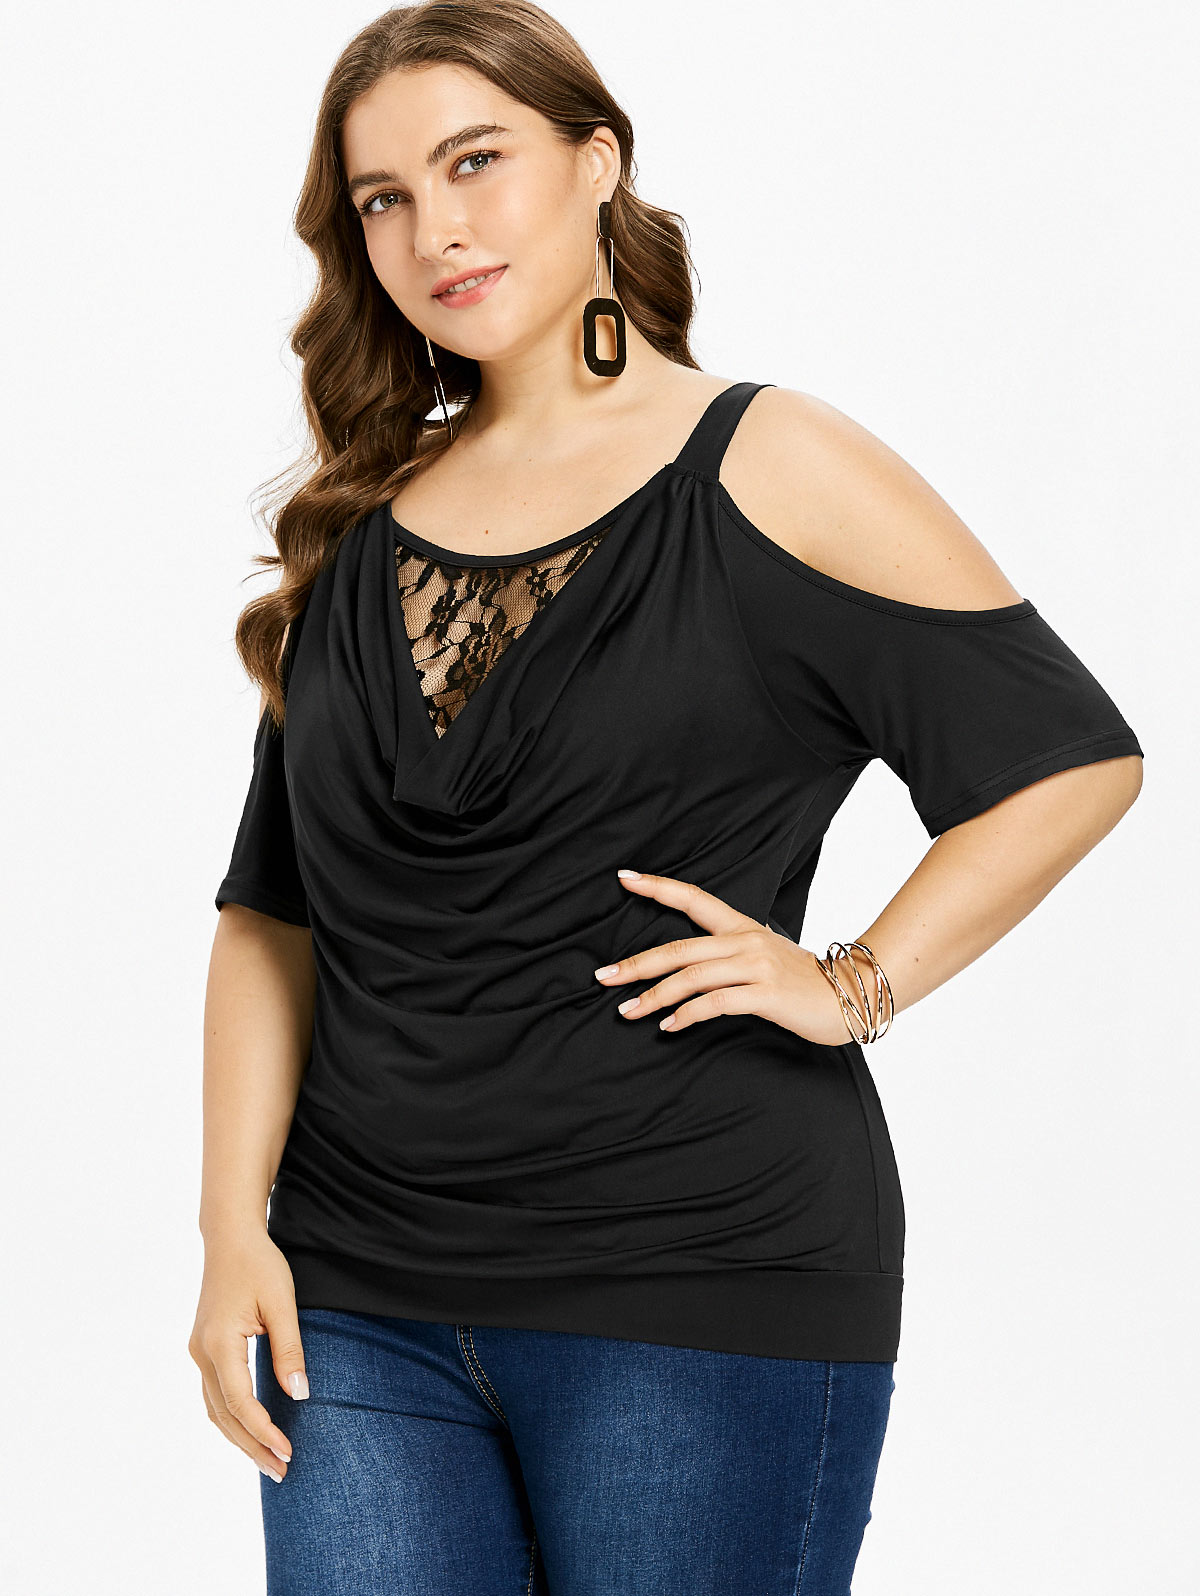 1b538cbee19ca Aliexpress.com   Buy Wipalo Plus Size 5XL Cold Shoulder Lace Insert Cowl  Neck Blouson T Shirt Women Summer Half Sleeves Fashion Tops Women Clothing  from ...